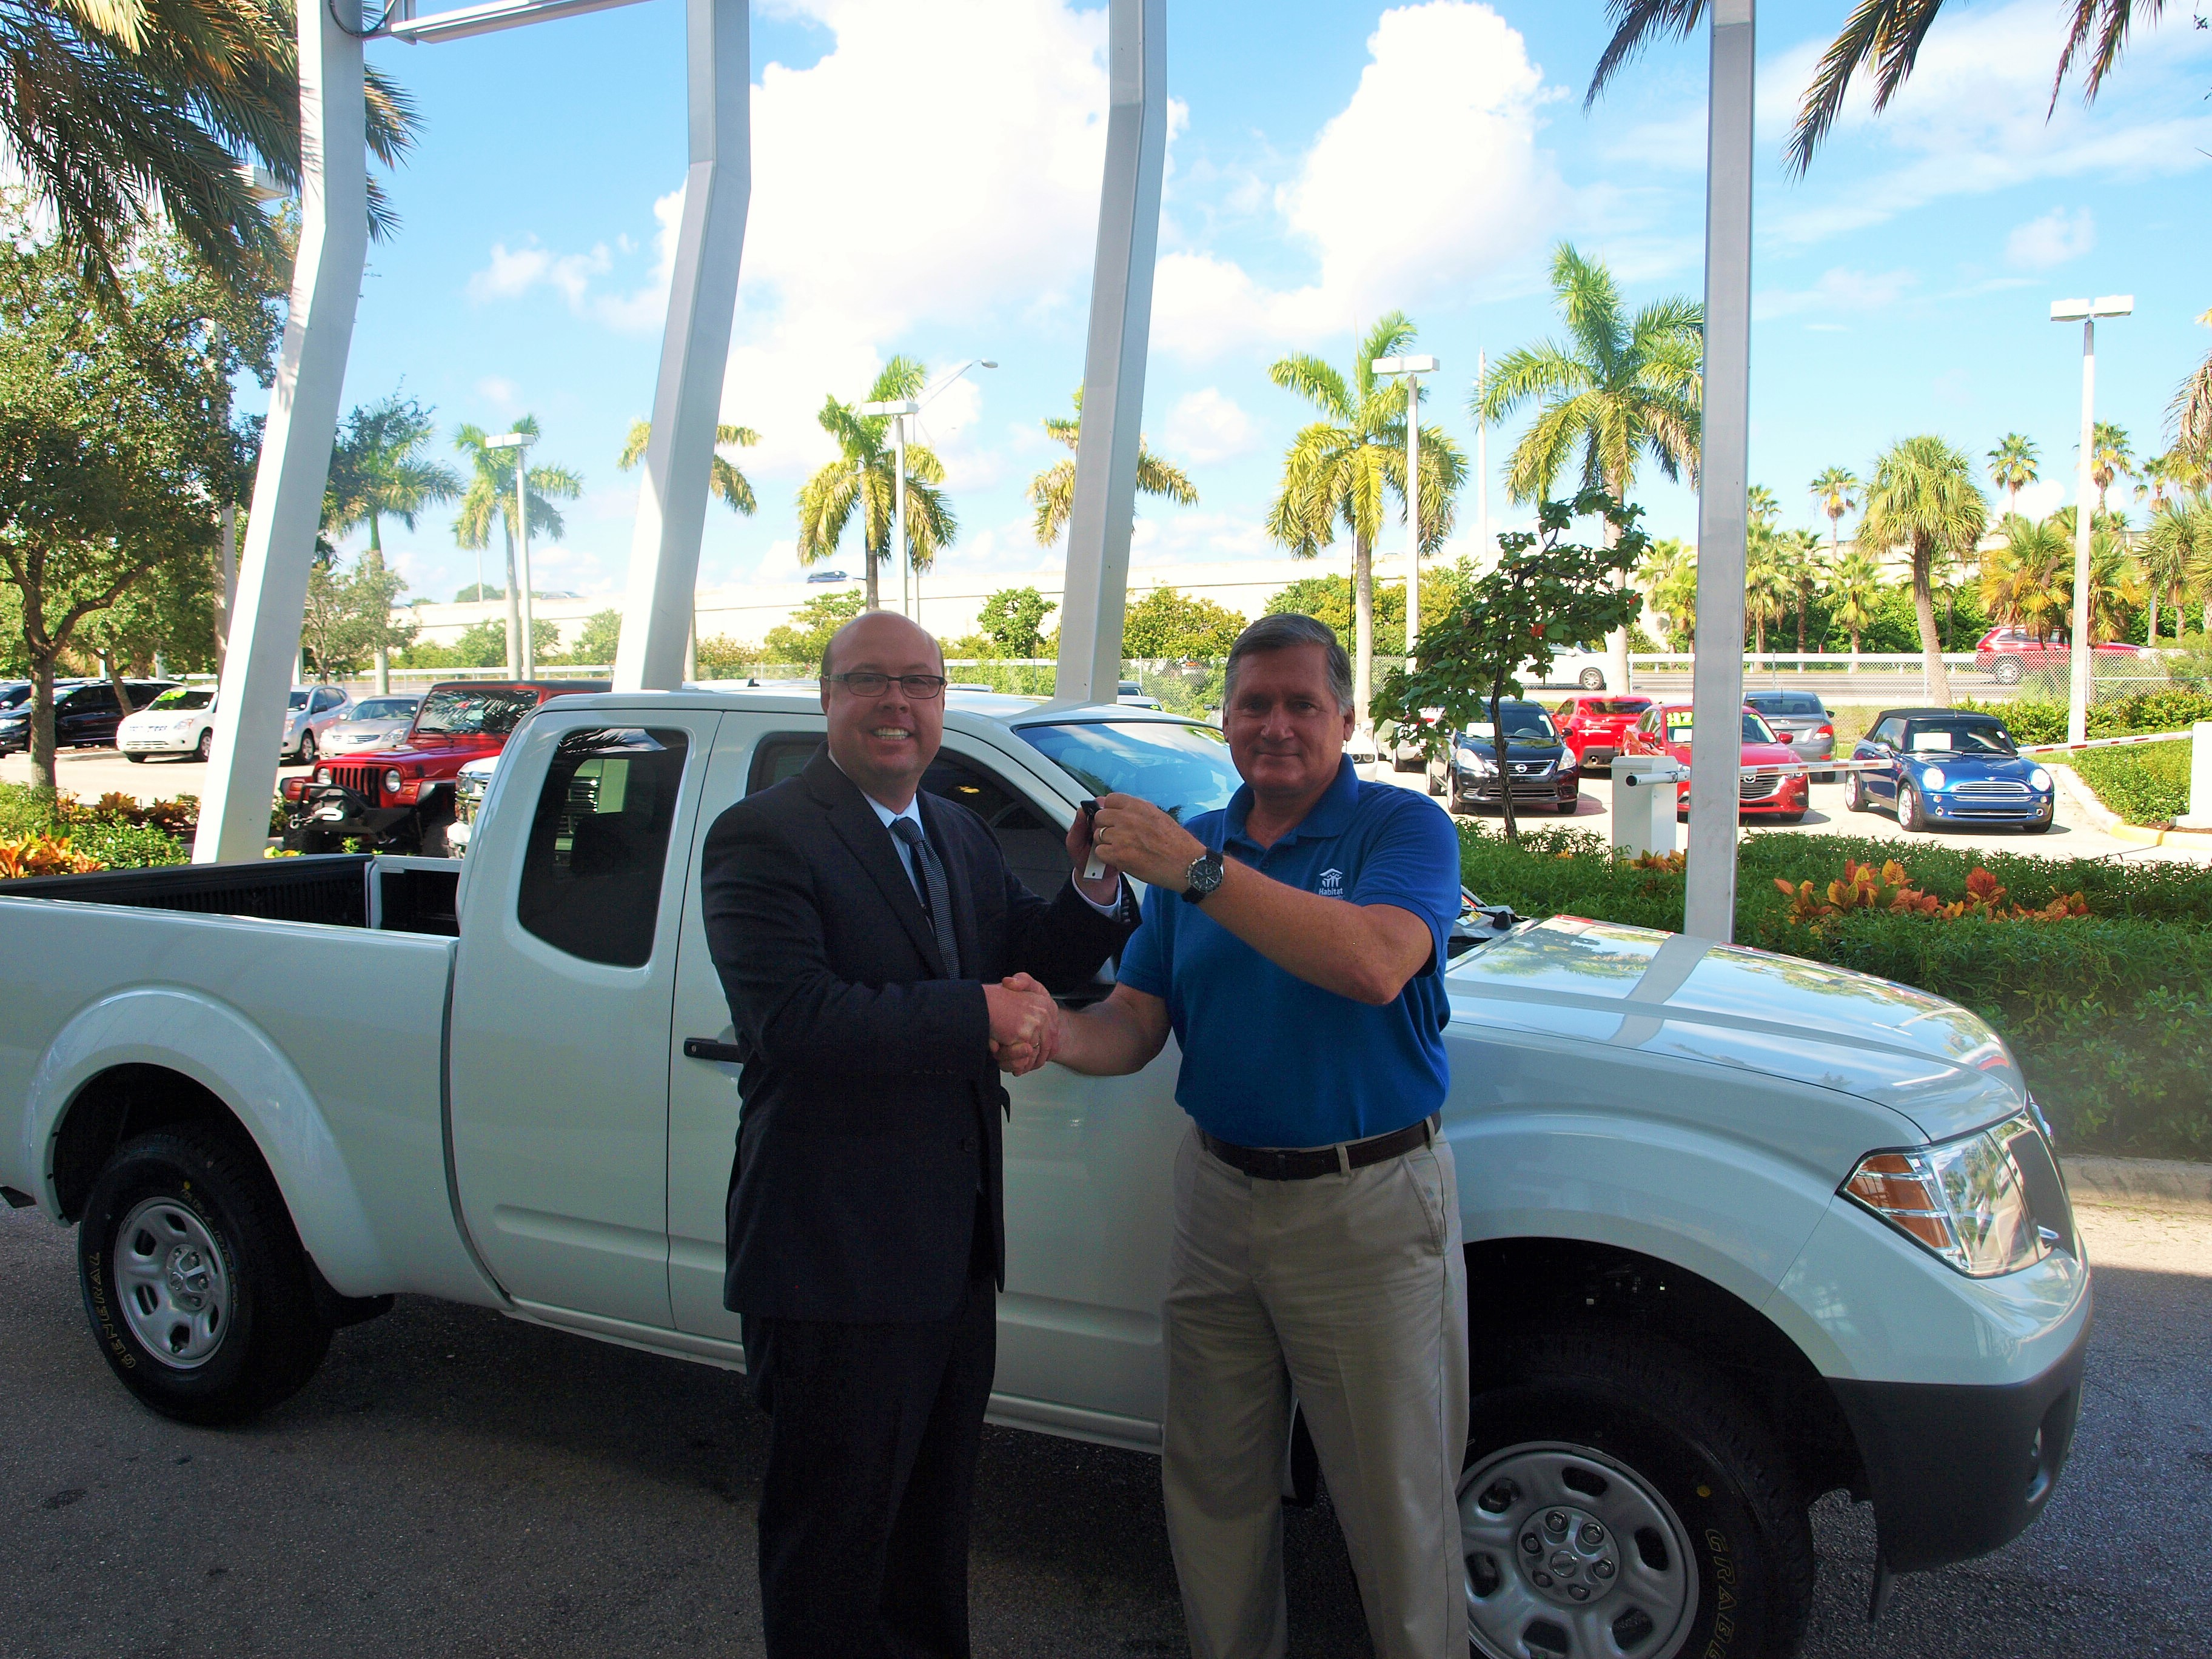 U201cWe Look Forward To Continuing Our Partnership With Nissan North America In Palm  Beach County,u201d Says Bernie Godek, CEO Of Habitat For Humanity Palm Beach ...